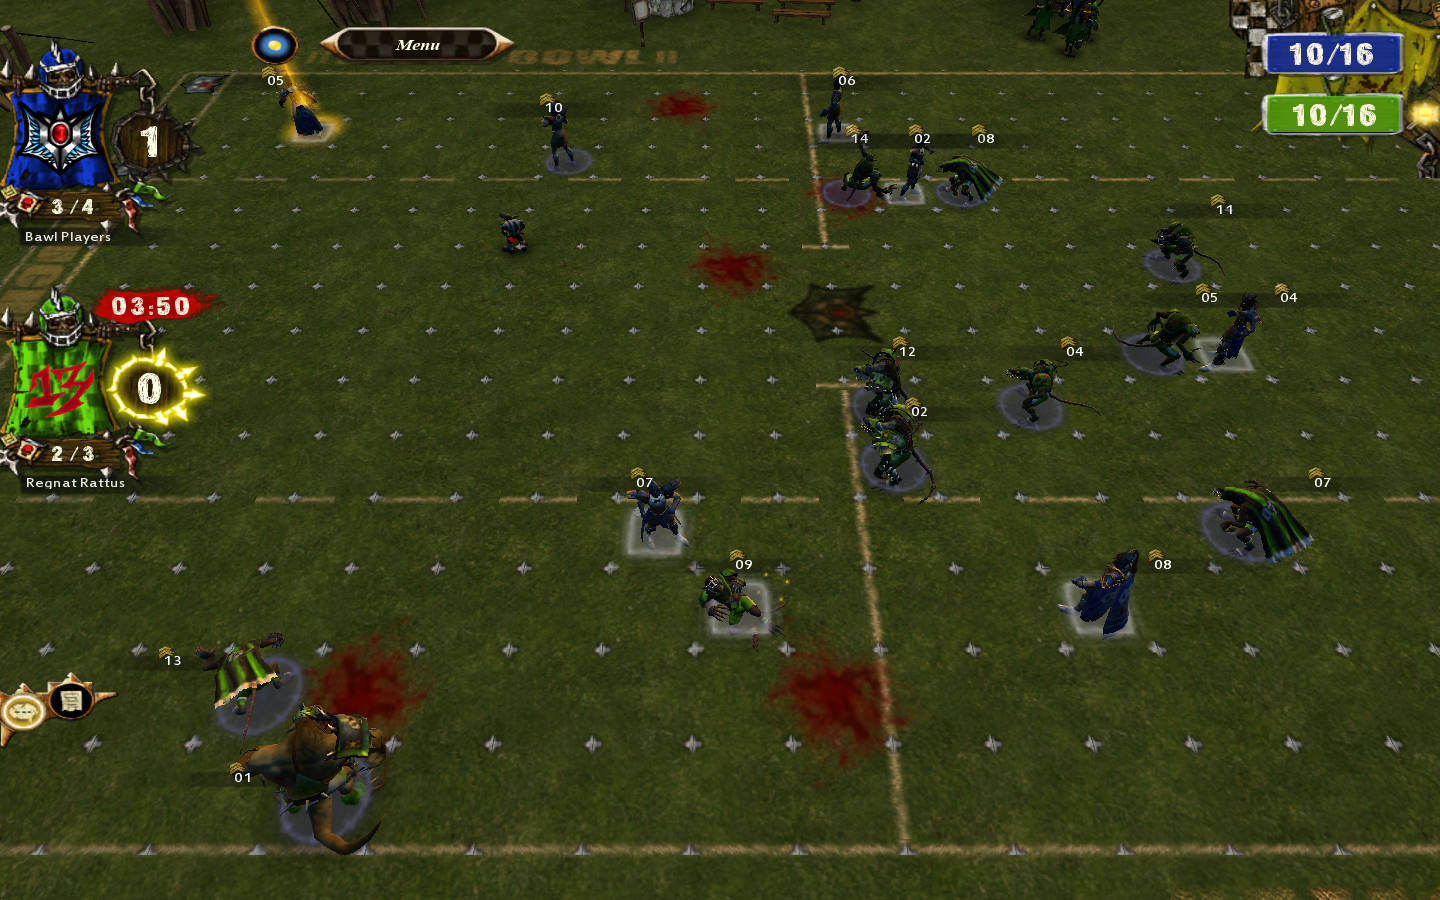 You're the Skaven.  2D blitz the ball carrier with the least amount of 2+ rolls.